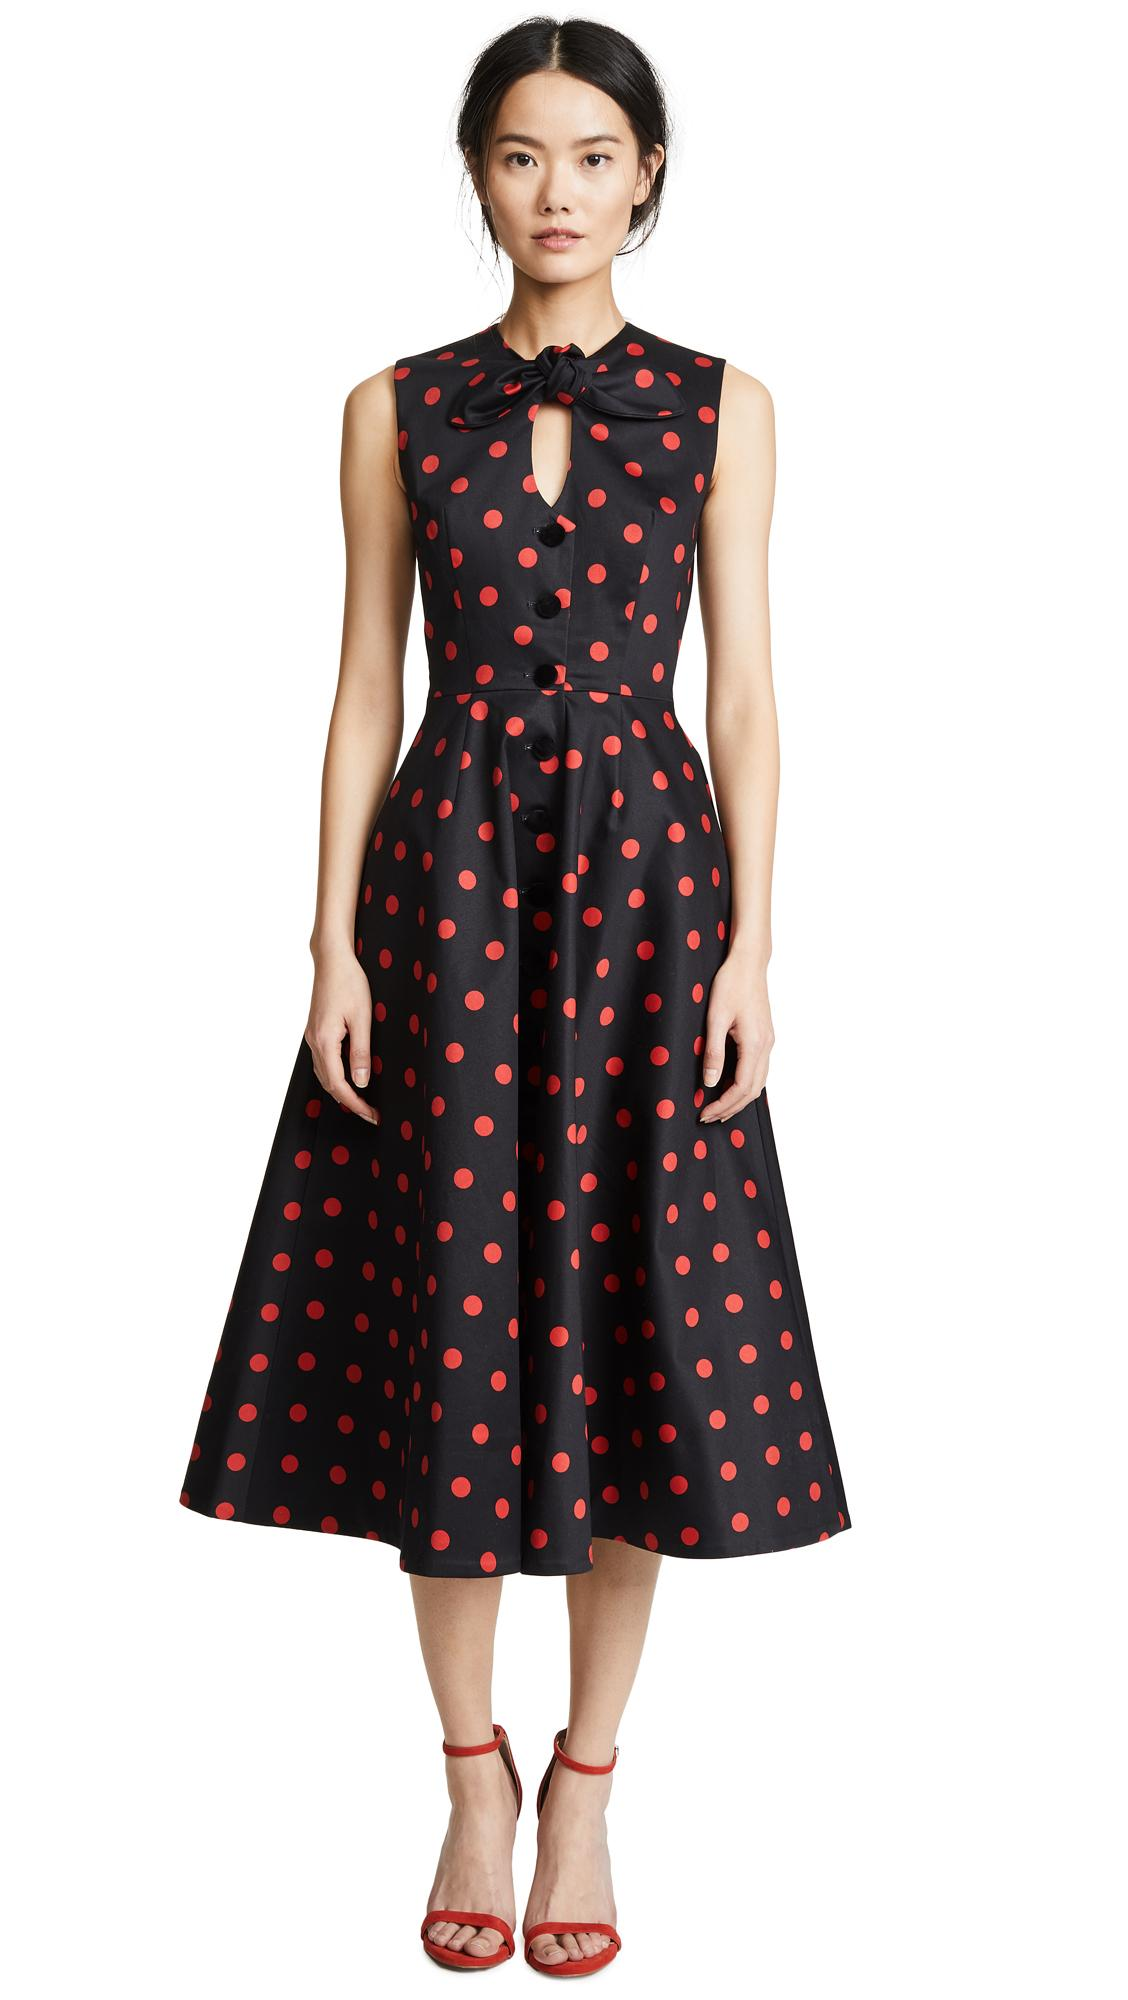 Marianna Senchina A-line Dress In Black/red